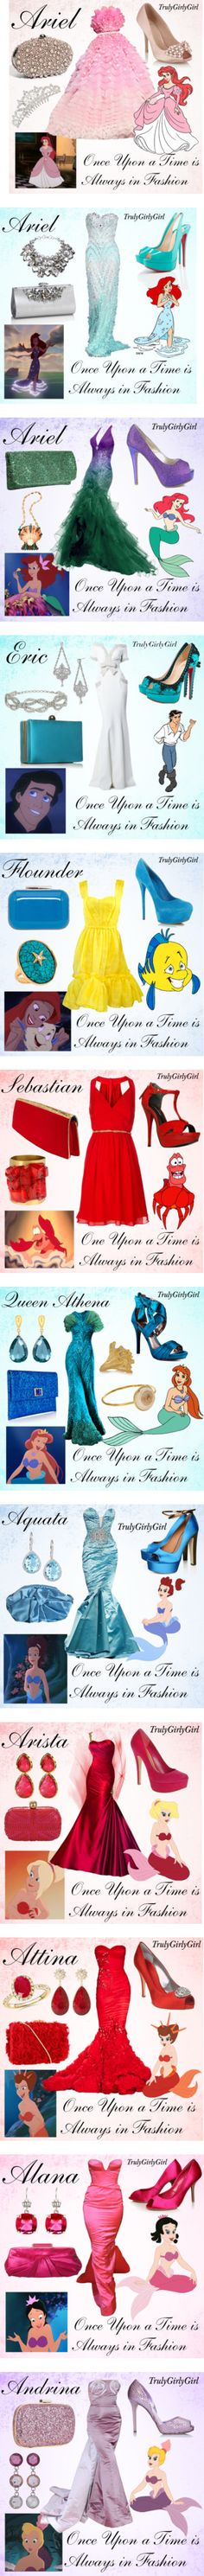 """""""Disney Style: The Little Mermaid"""" by trulygirlygirl ❤ liked on Polyvore"""